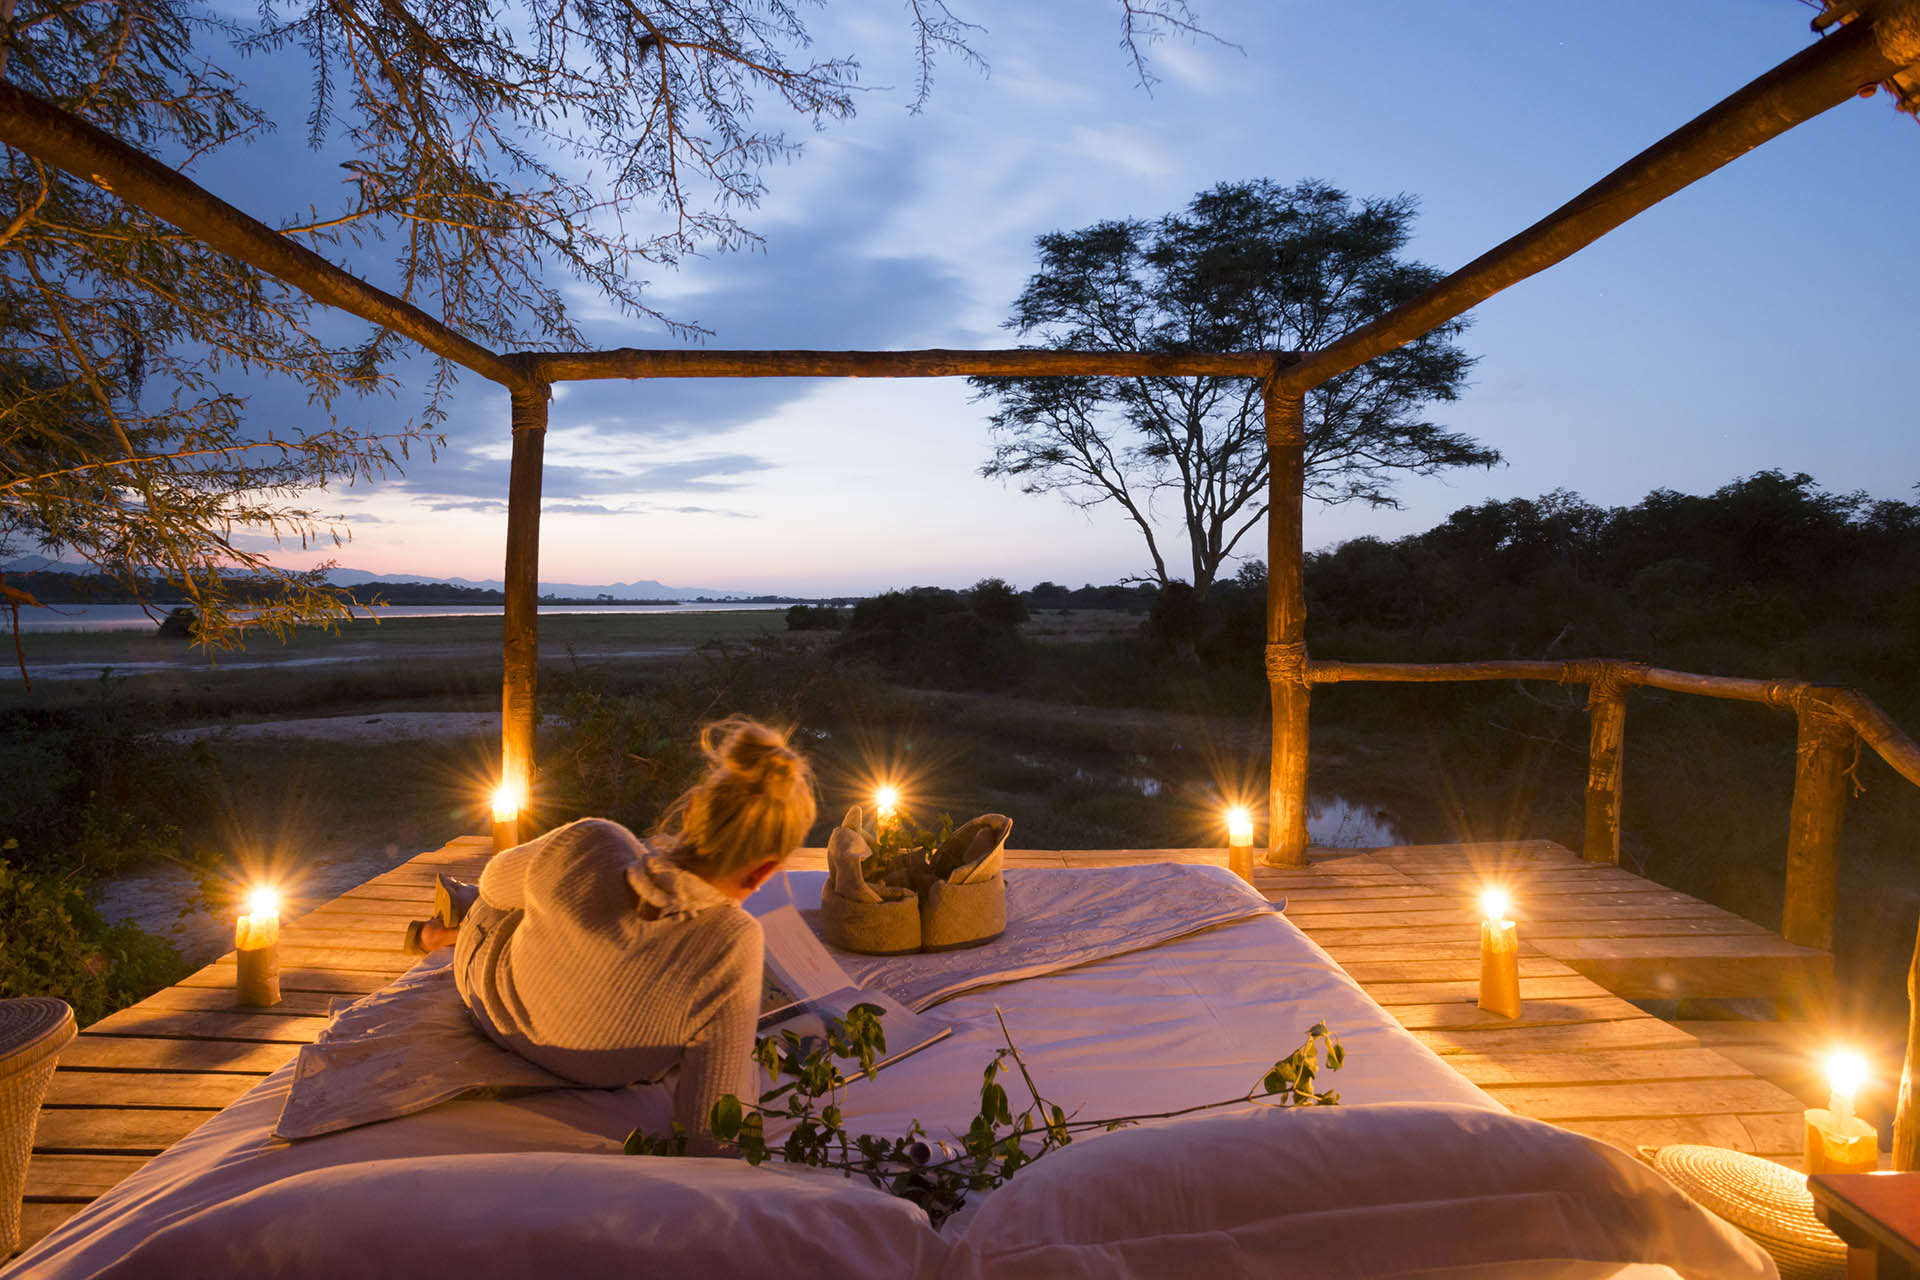 liwonde national park malawi-national-parks-reserves-malawian-style-malawi-adventures-experiences-holidays-specialist-tour-operator-star-bed-mvuu-lodge